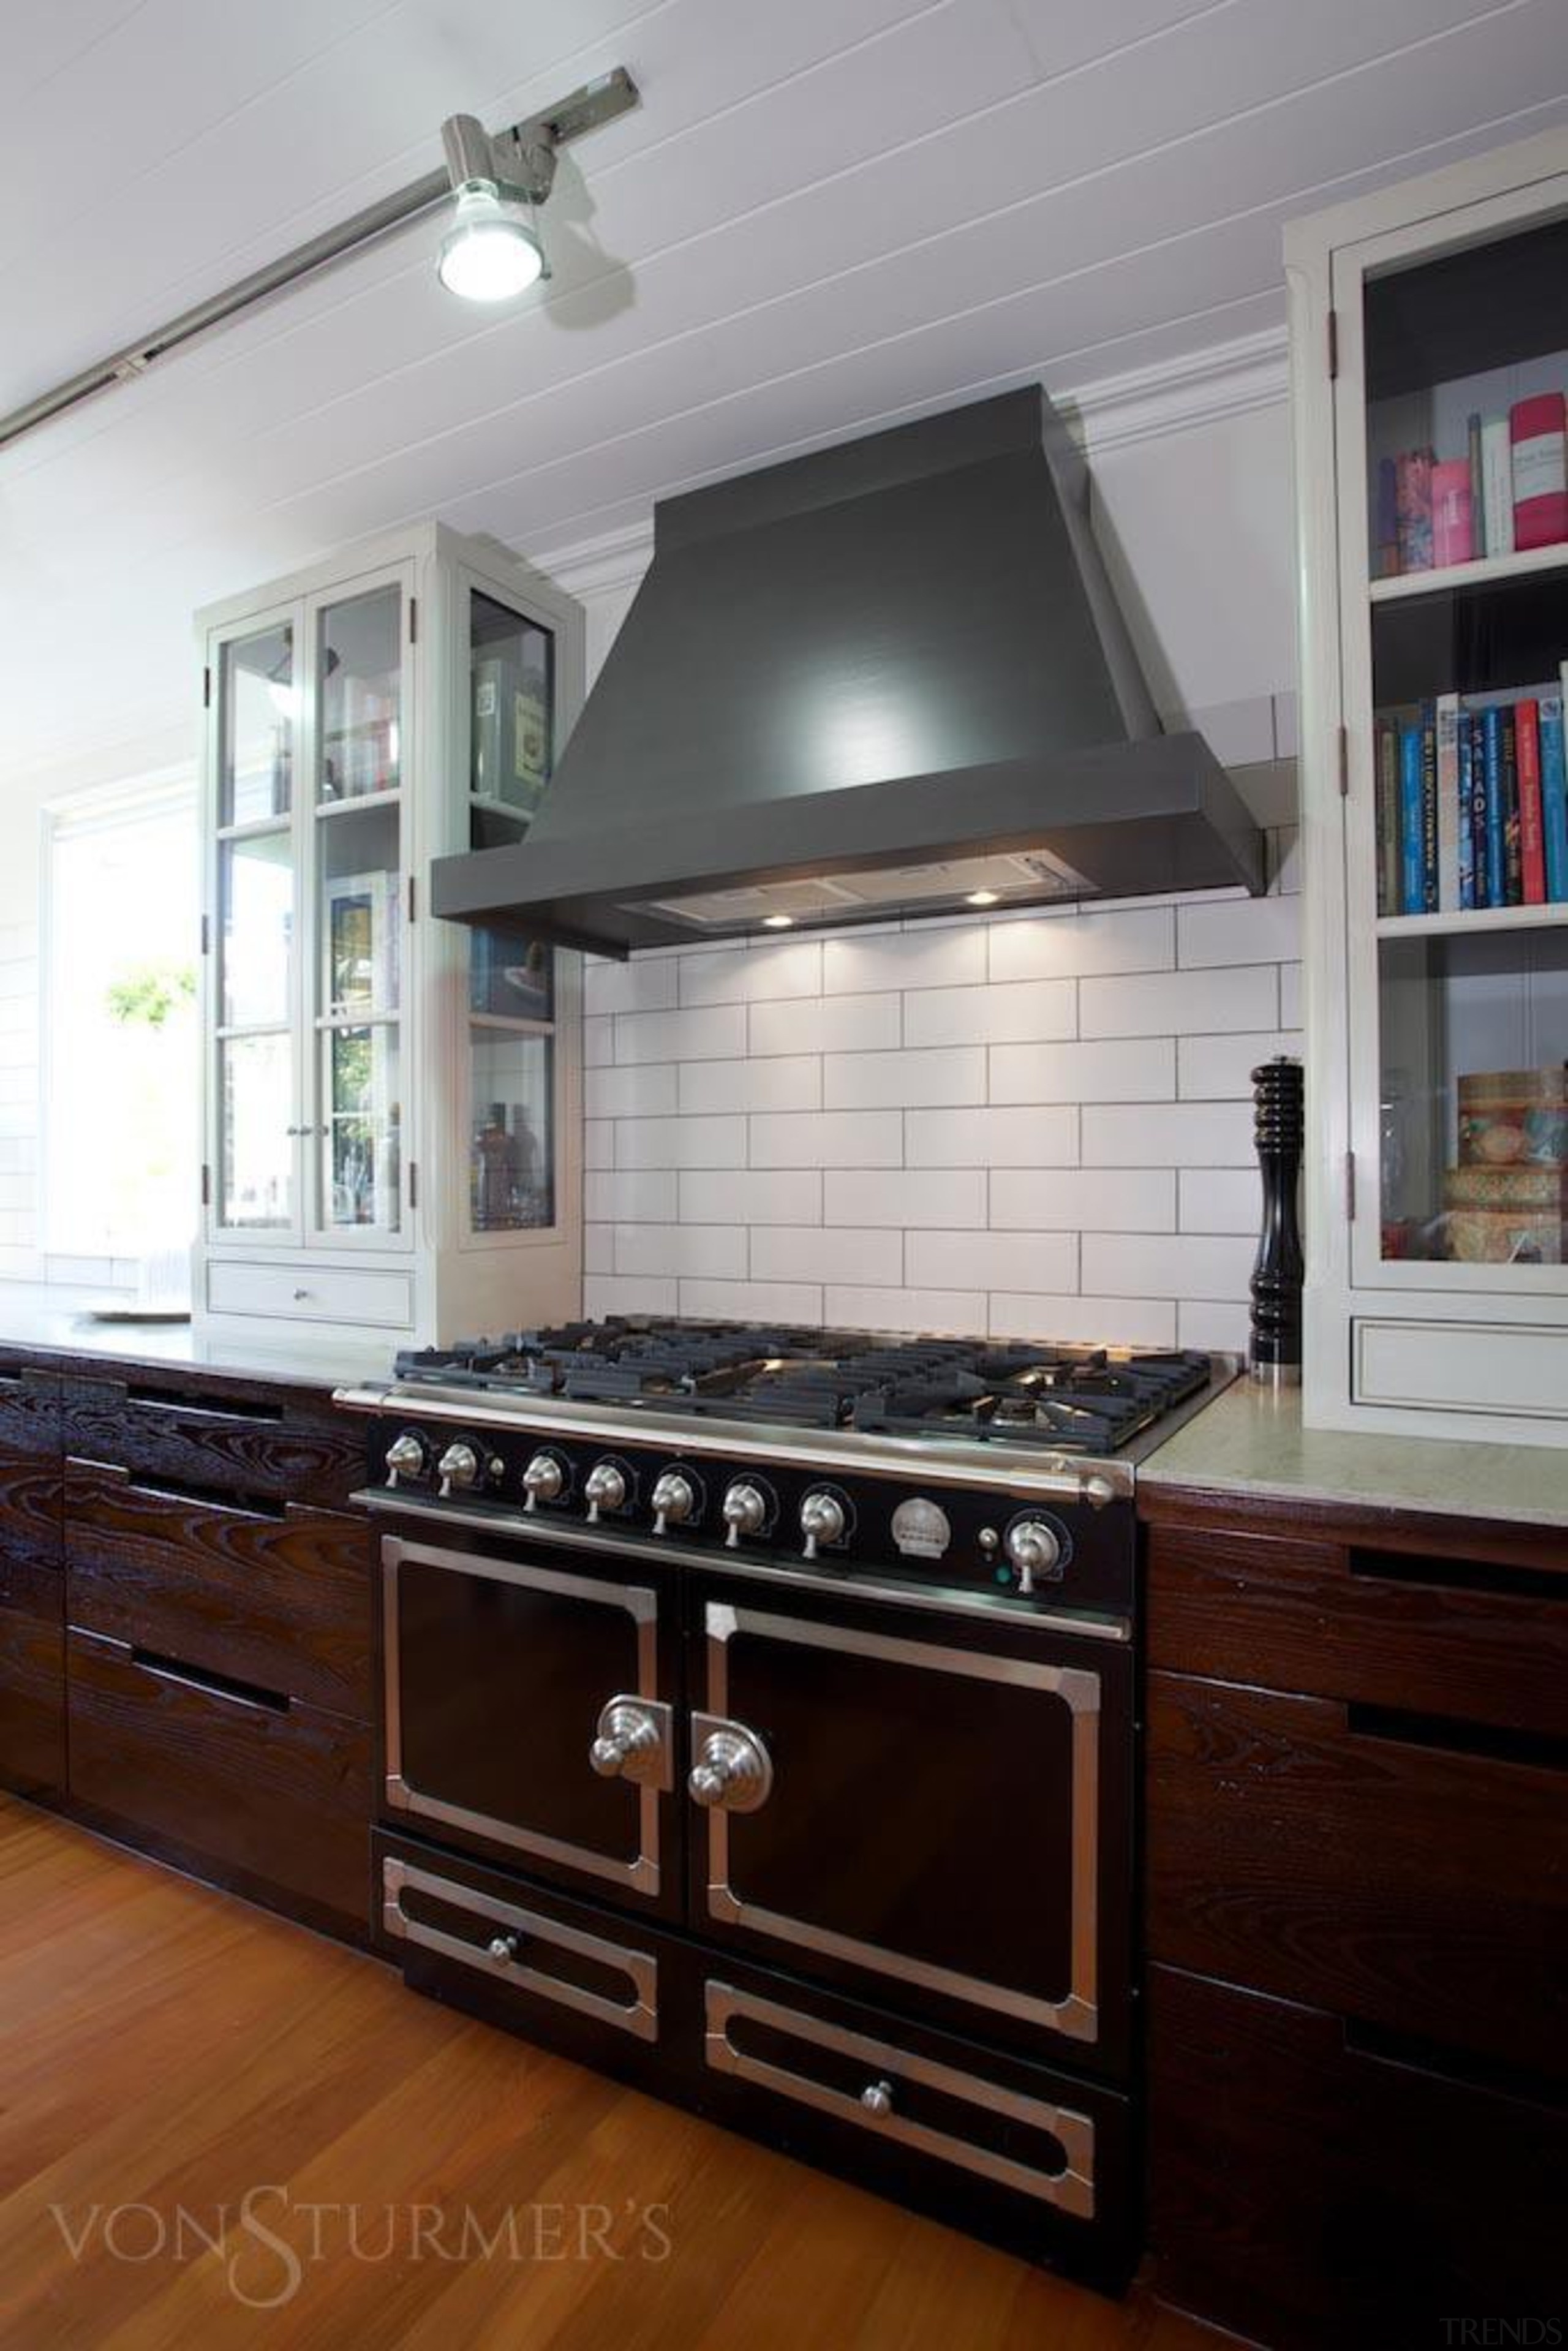 Grand Old Auckland Villa - Grand Old Auckland cabinetry, countertop, cuisine classique, flooring, home appliance, interior design, kitchen, kitchen appliance, kitchen stove, oven, room, gray, black